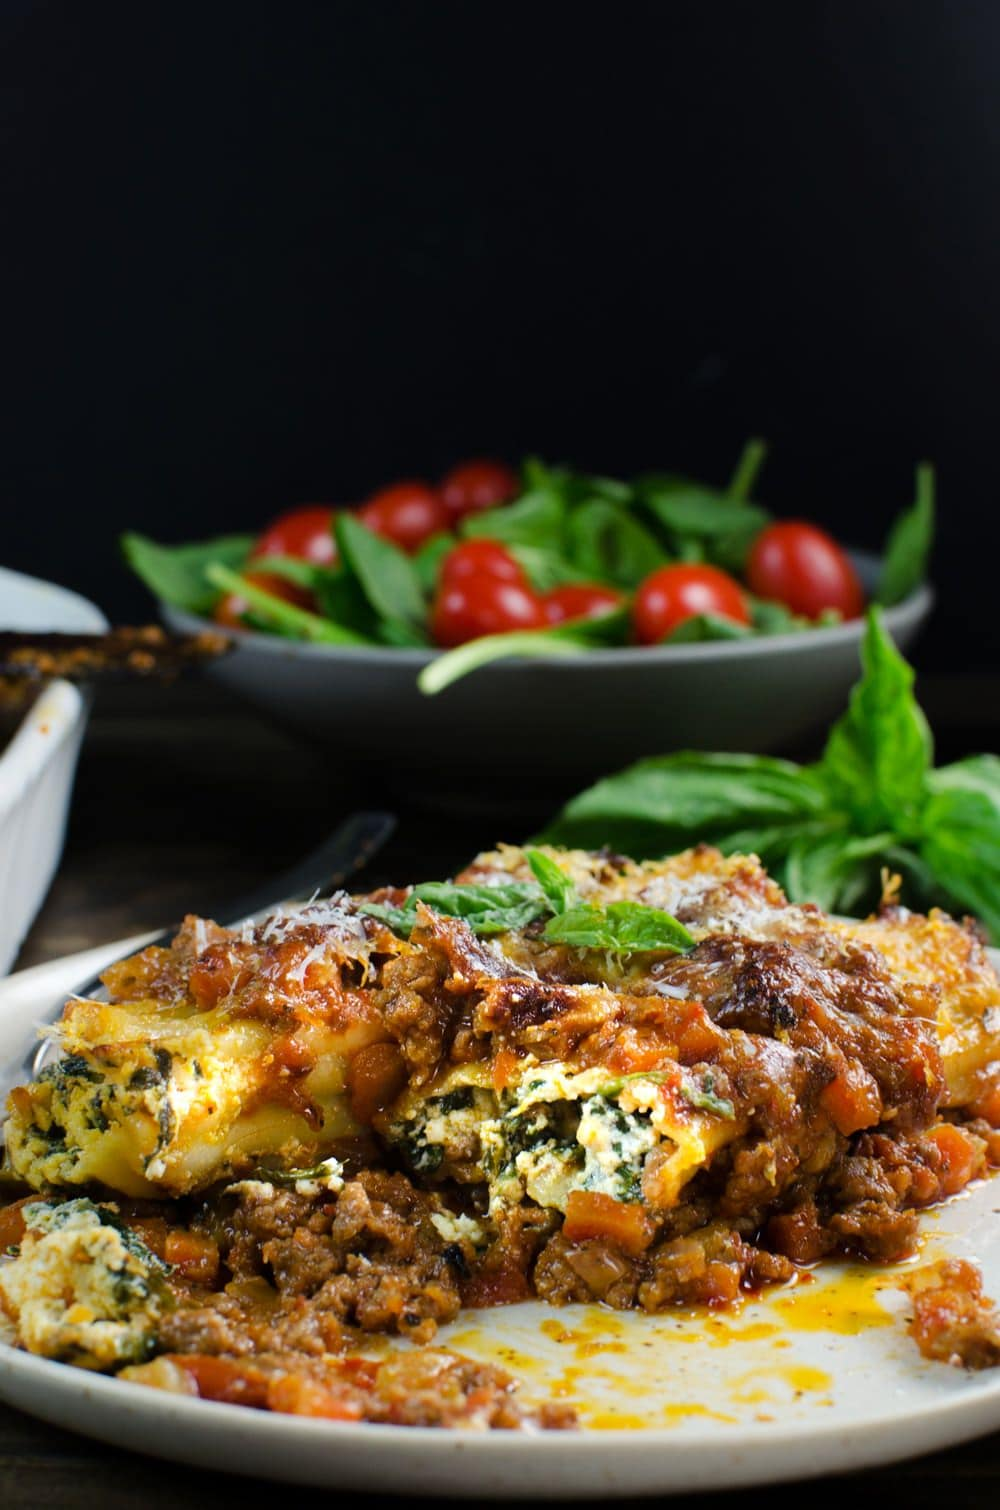 Cannelloni with minced meat - pasta dream